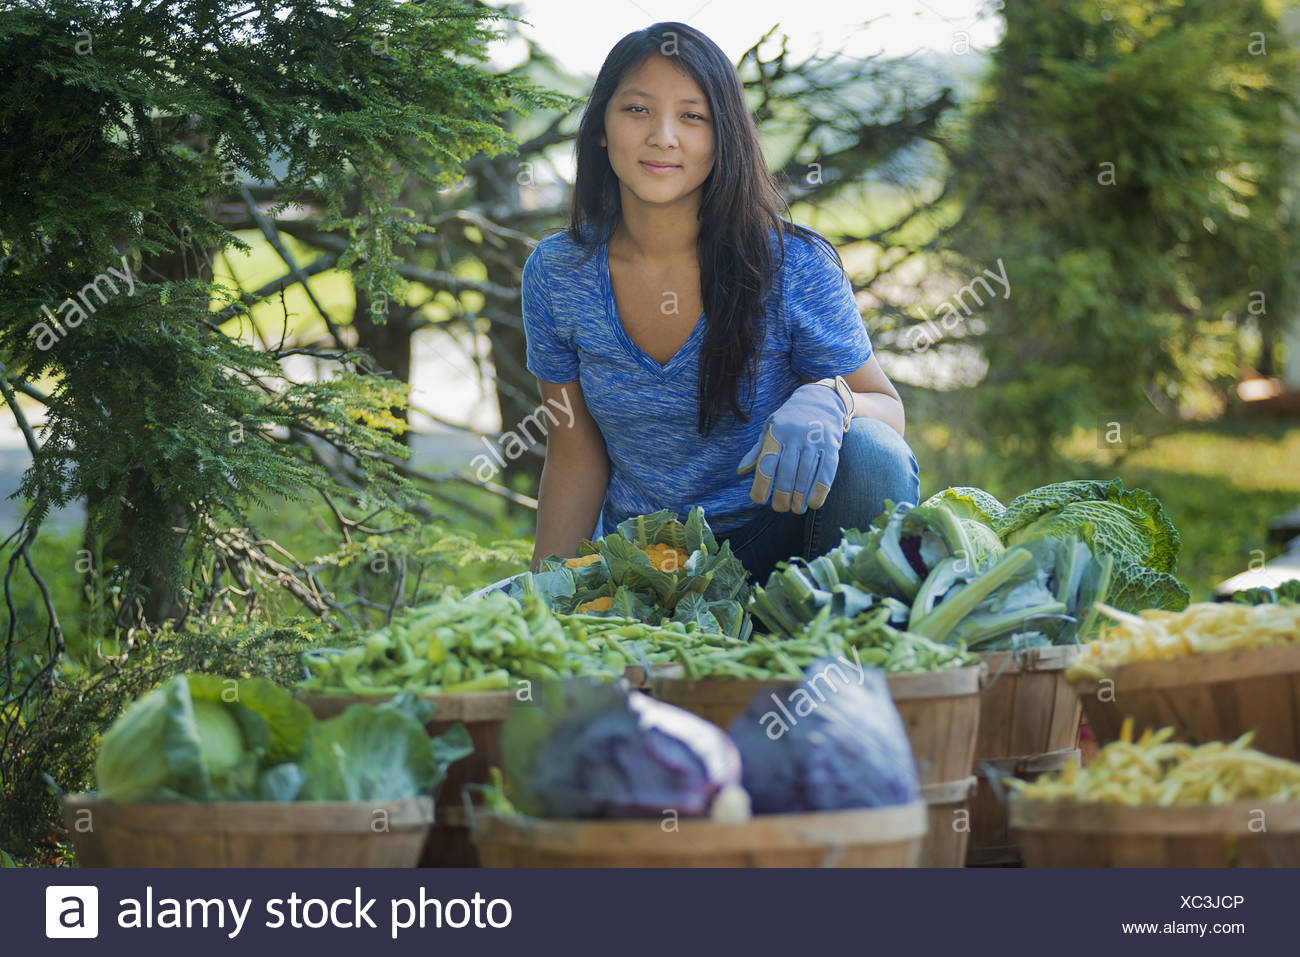 New York state USA young woman in field market garden fresh vegetable - Stock Image